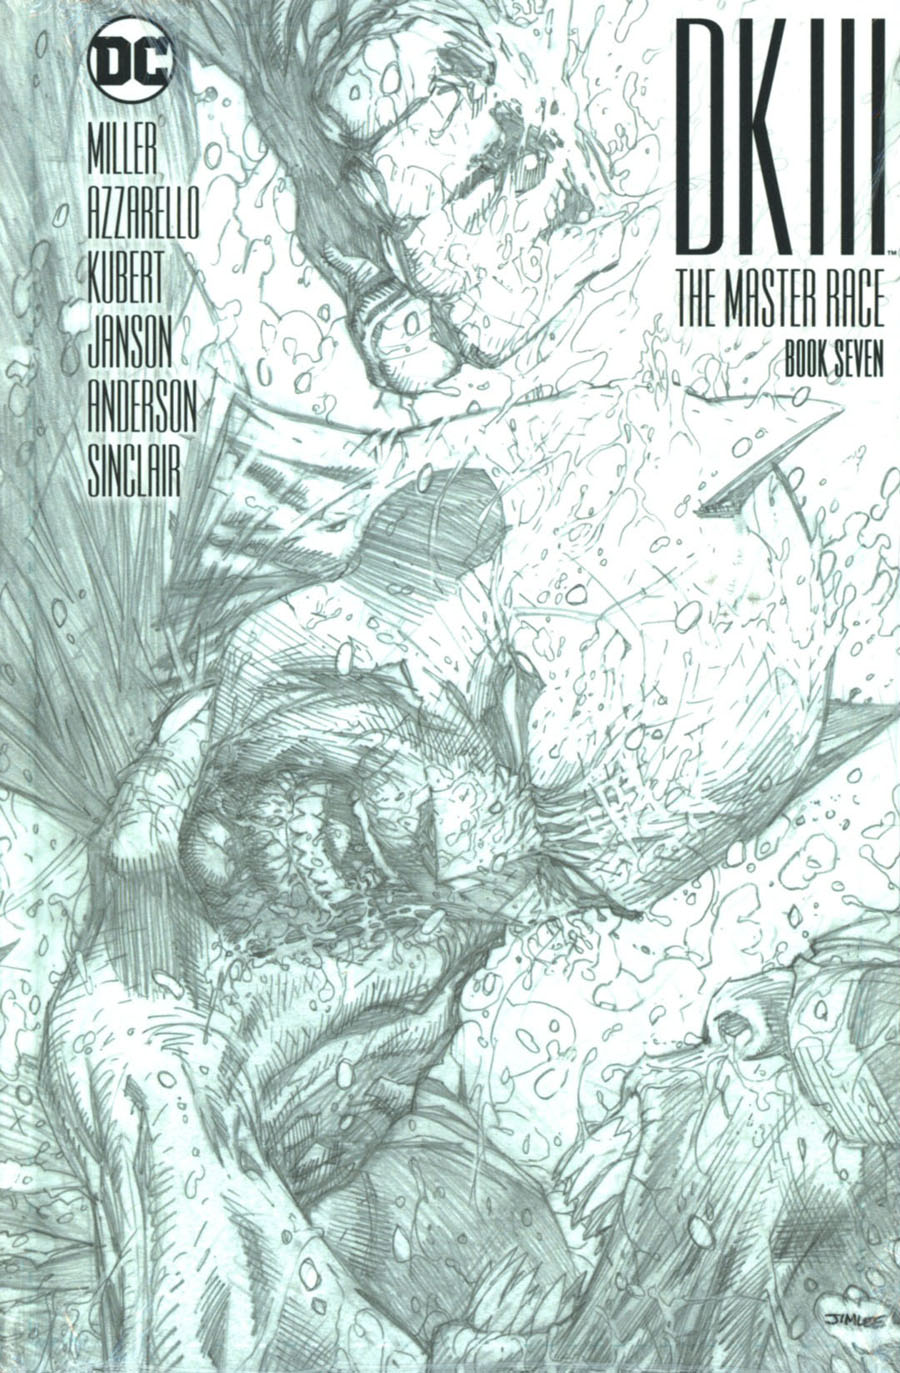 Dark Knight III The Master Race #7 Cover D Collectors Edition HC